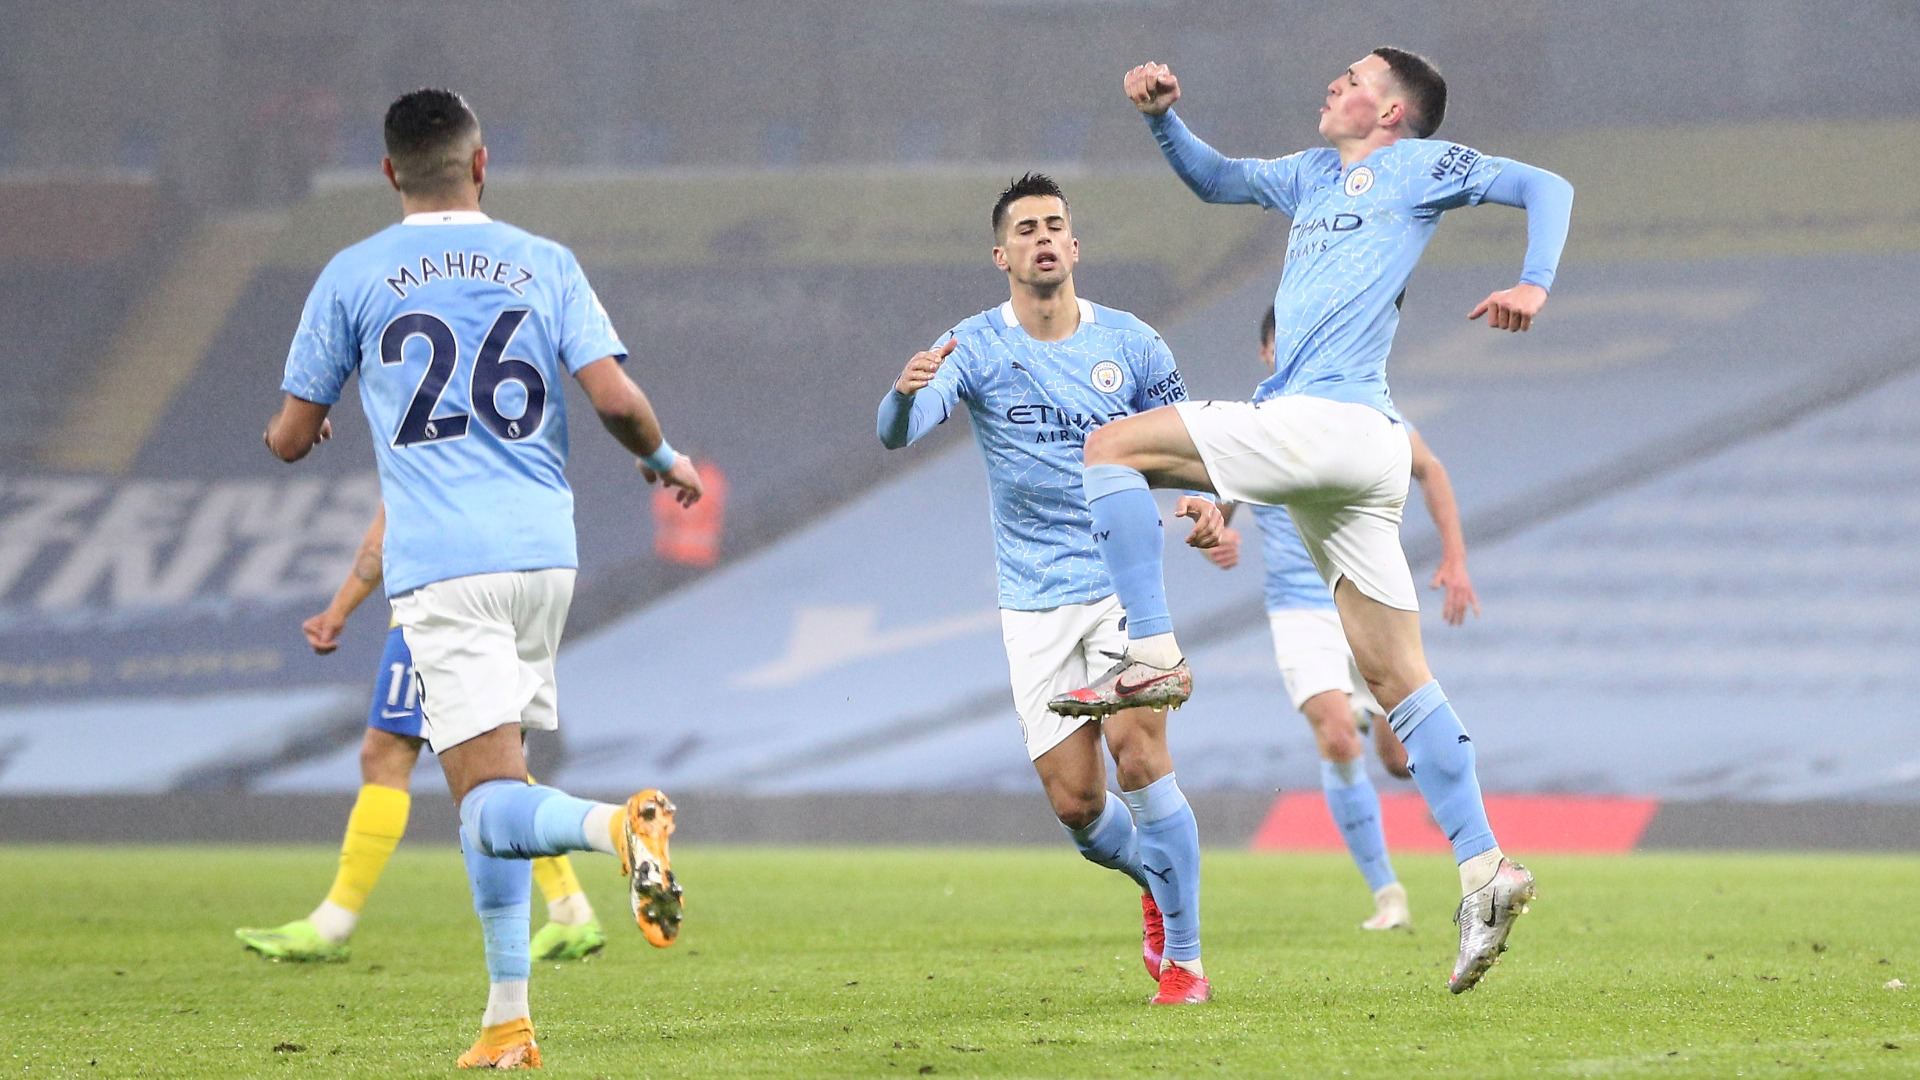 Manchester City 1-0 Brighton and Hove Albion: Foden extends unbeaten run